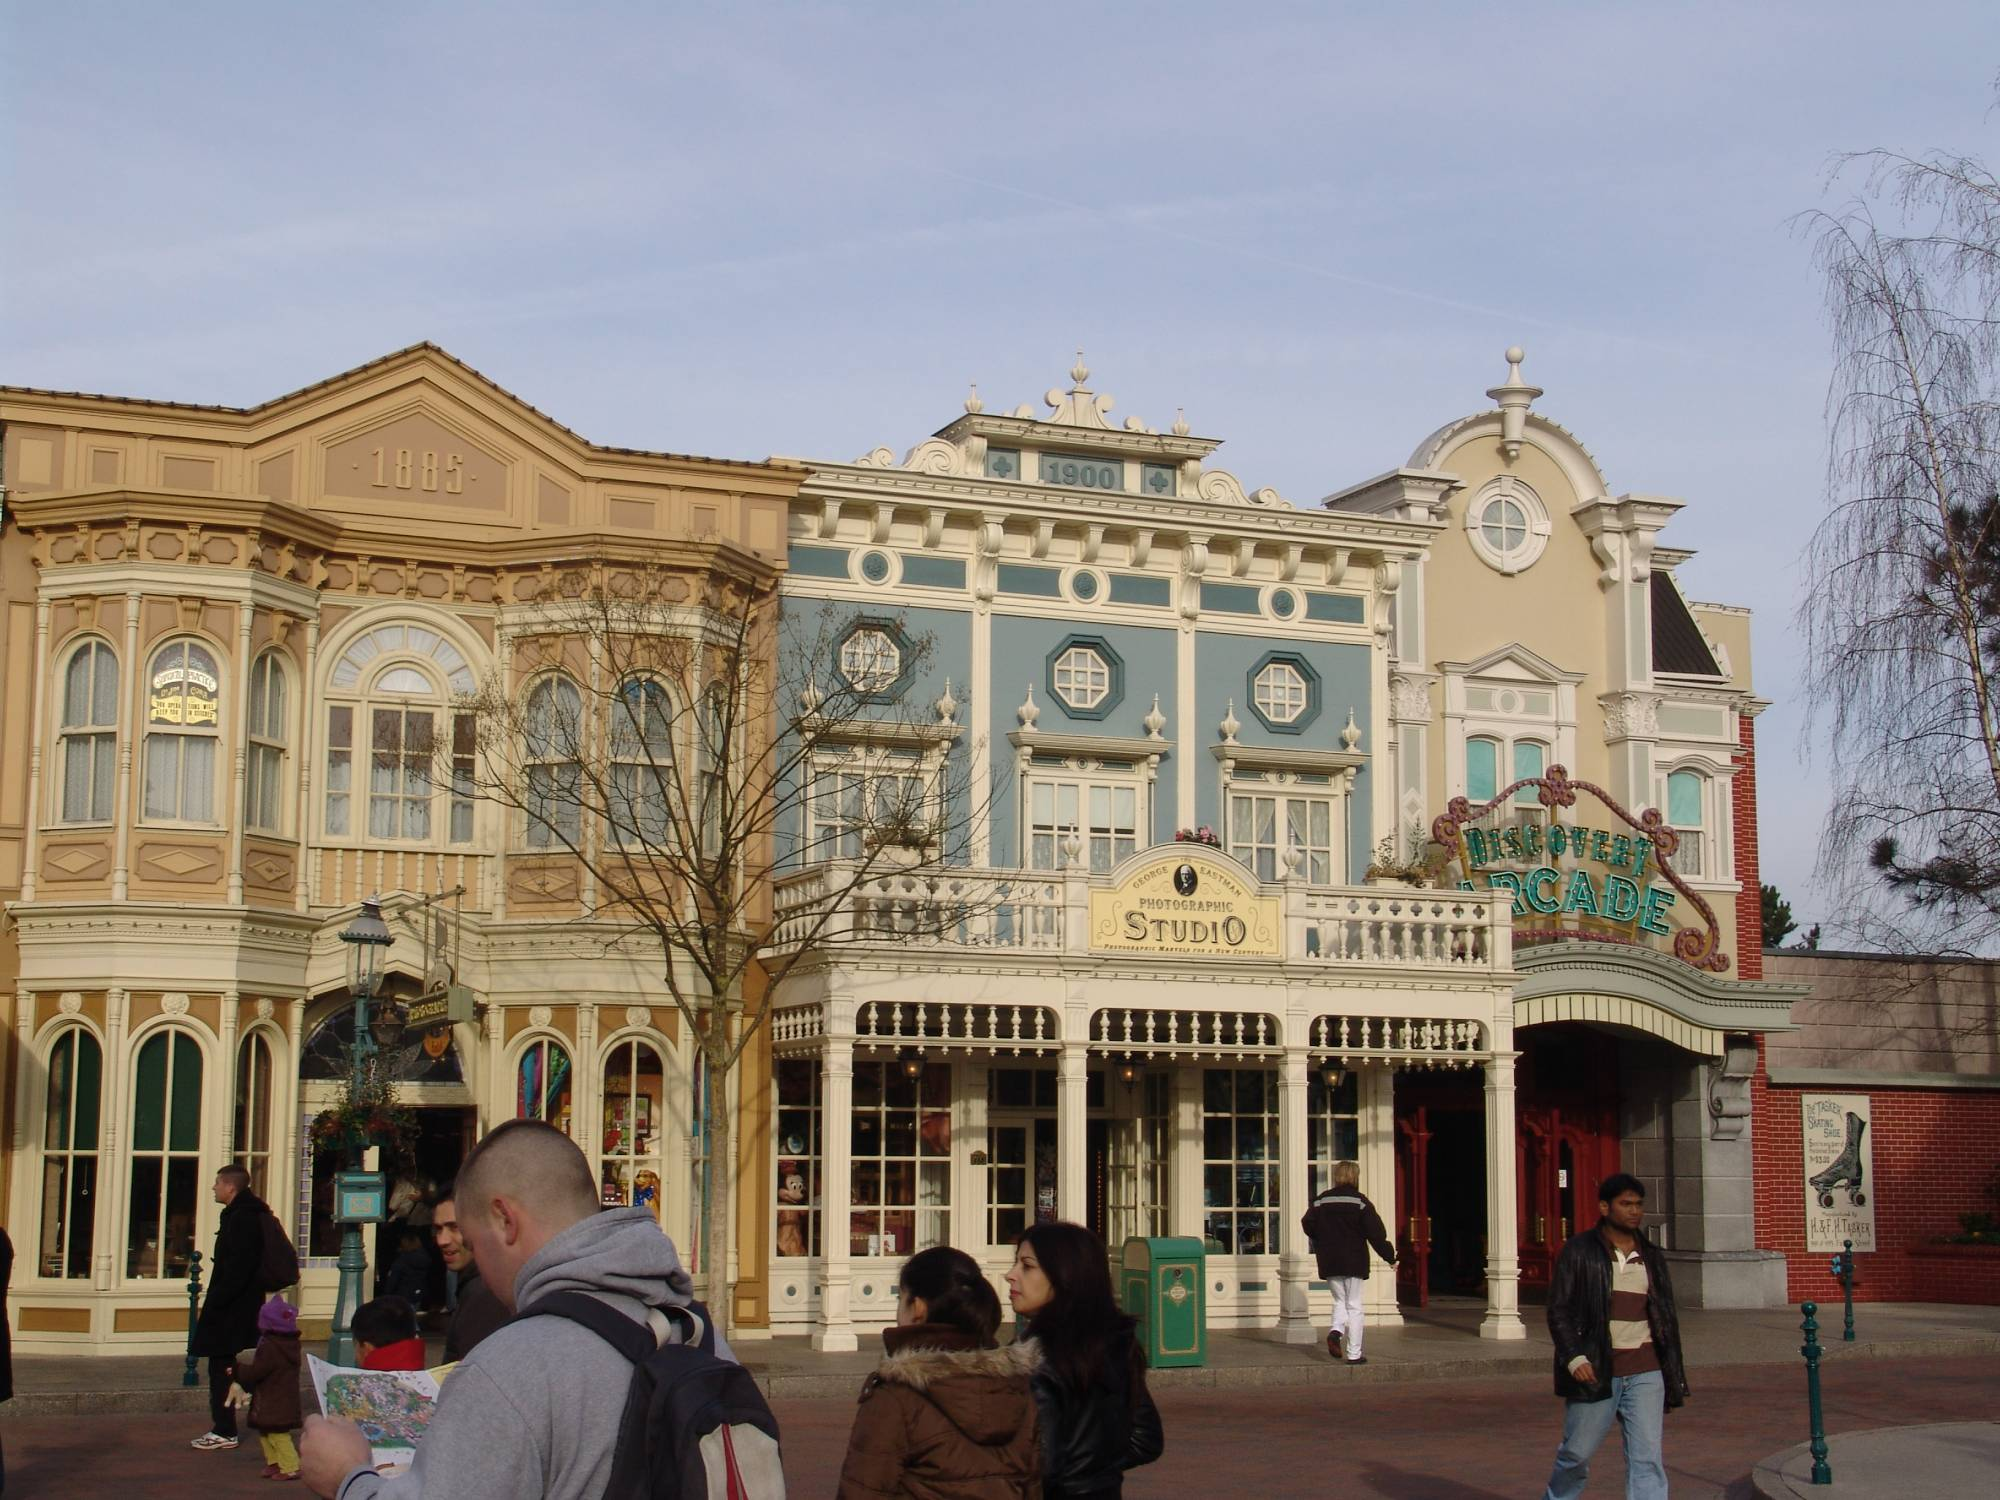 Disneyland Paris - Main Street USA